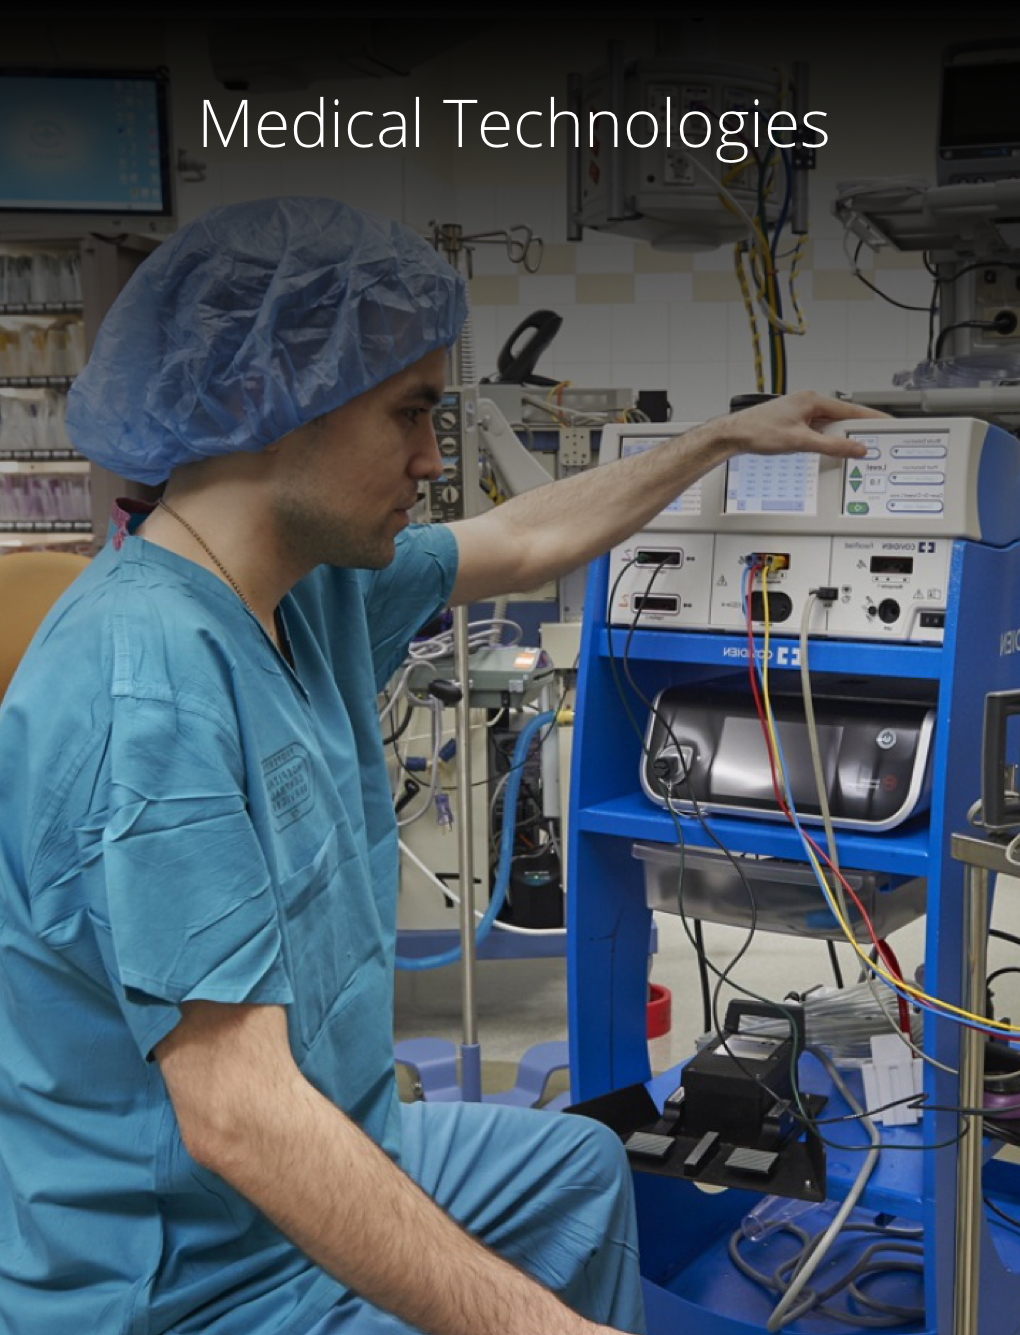 Technicians and engineers rely on handsfree Remote Assistance to empower further communication between equipment suppliers and labs, and task guidance to aid in complex medical device manufacturing, transportation, and upkeep.